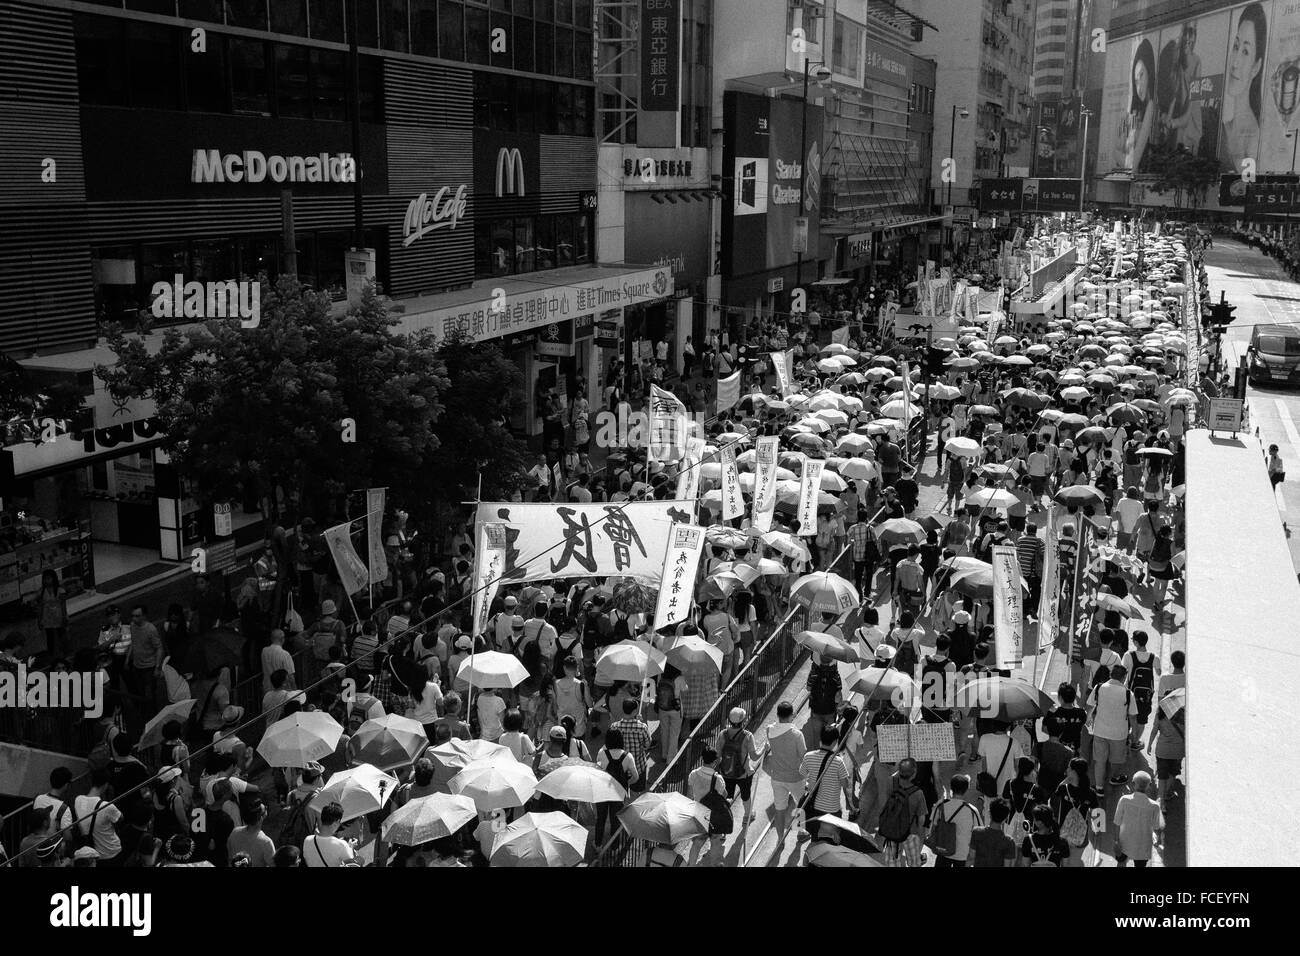 HONG KONG - JULY 1: Hong Kong people show their dissatisfaction to the Hong Kong by march on July 1, 2015 in Hong - Stock Image